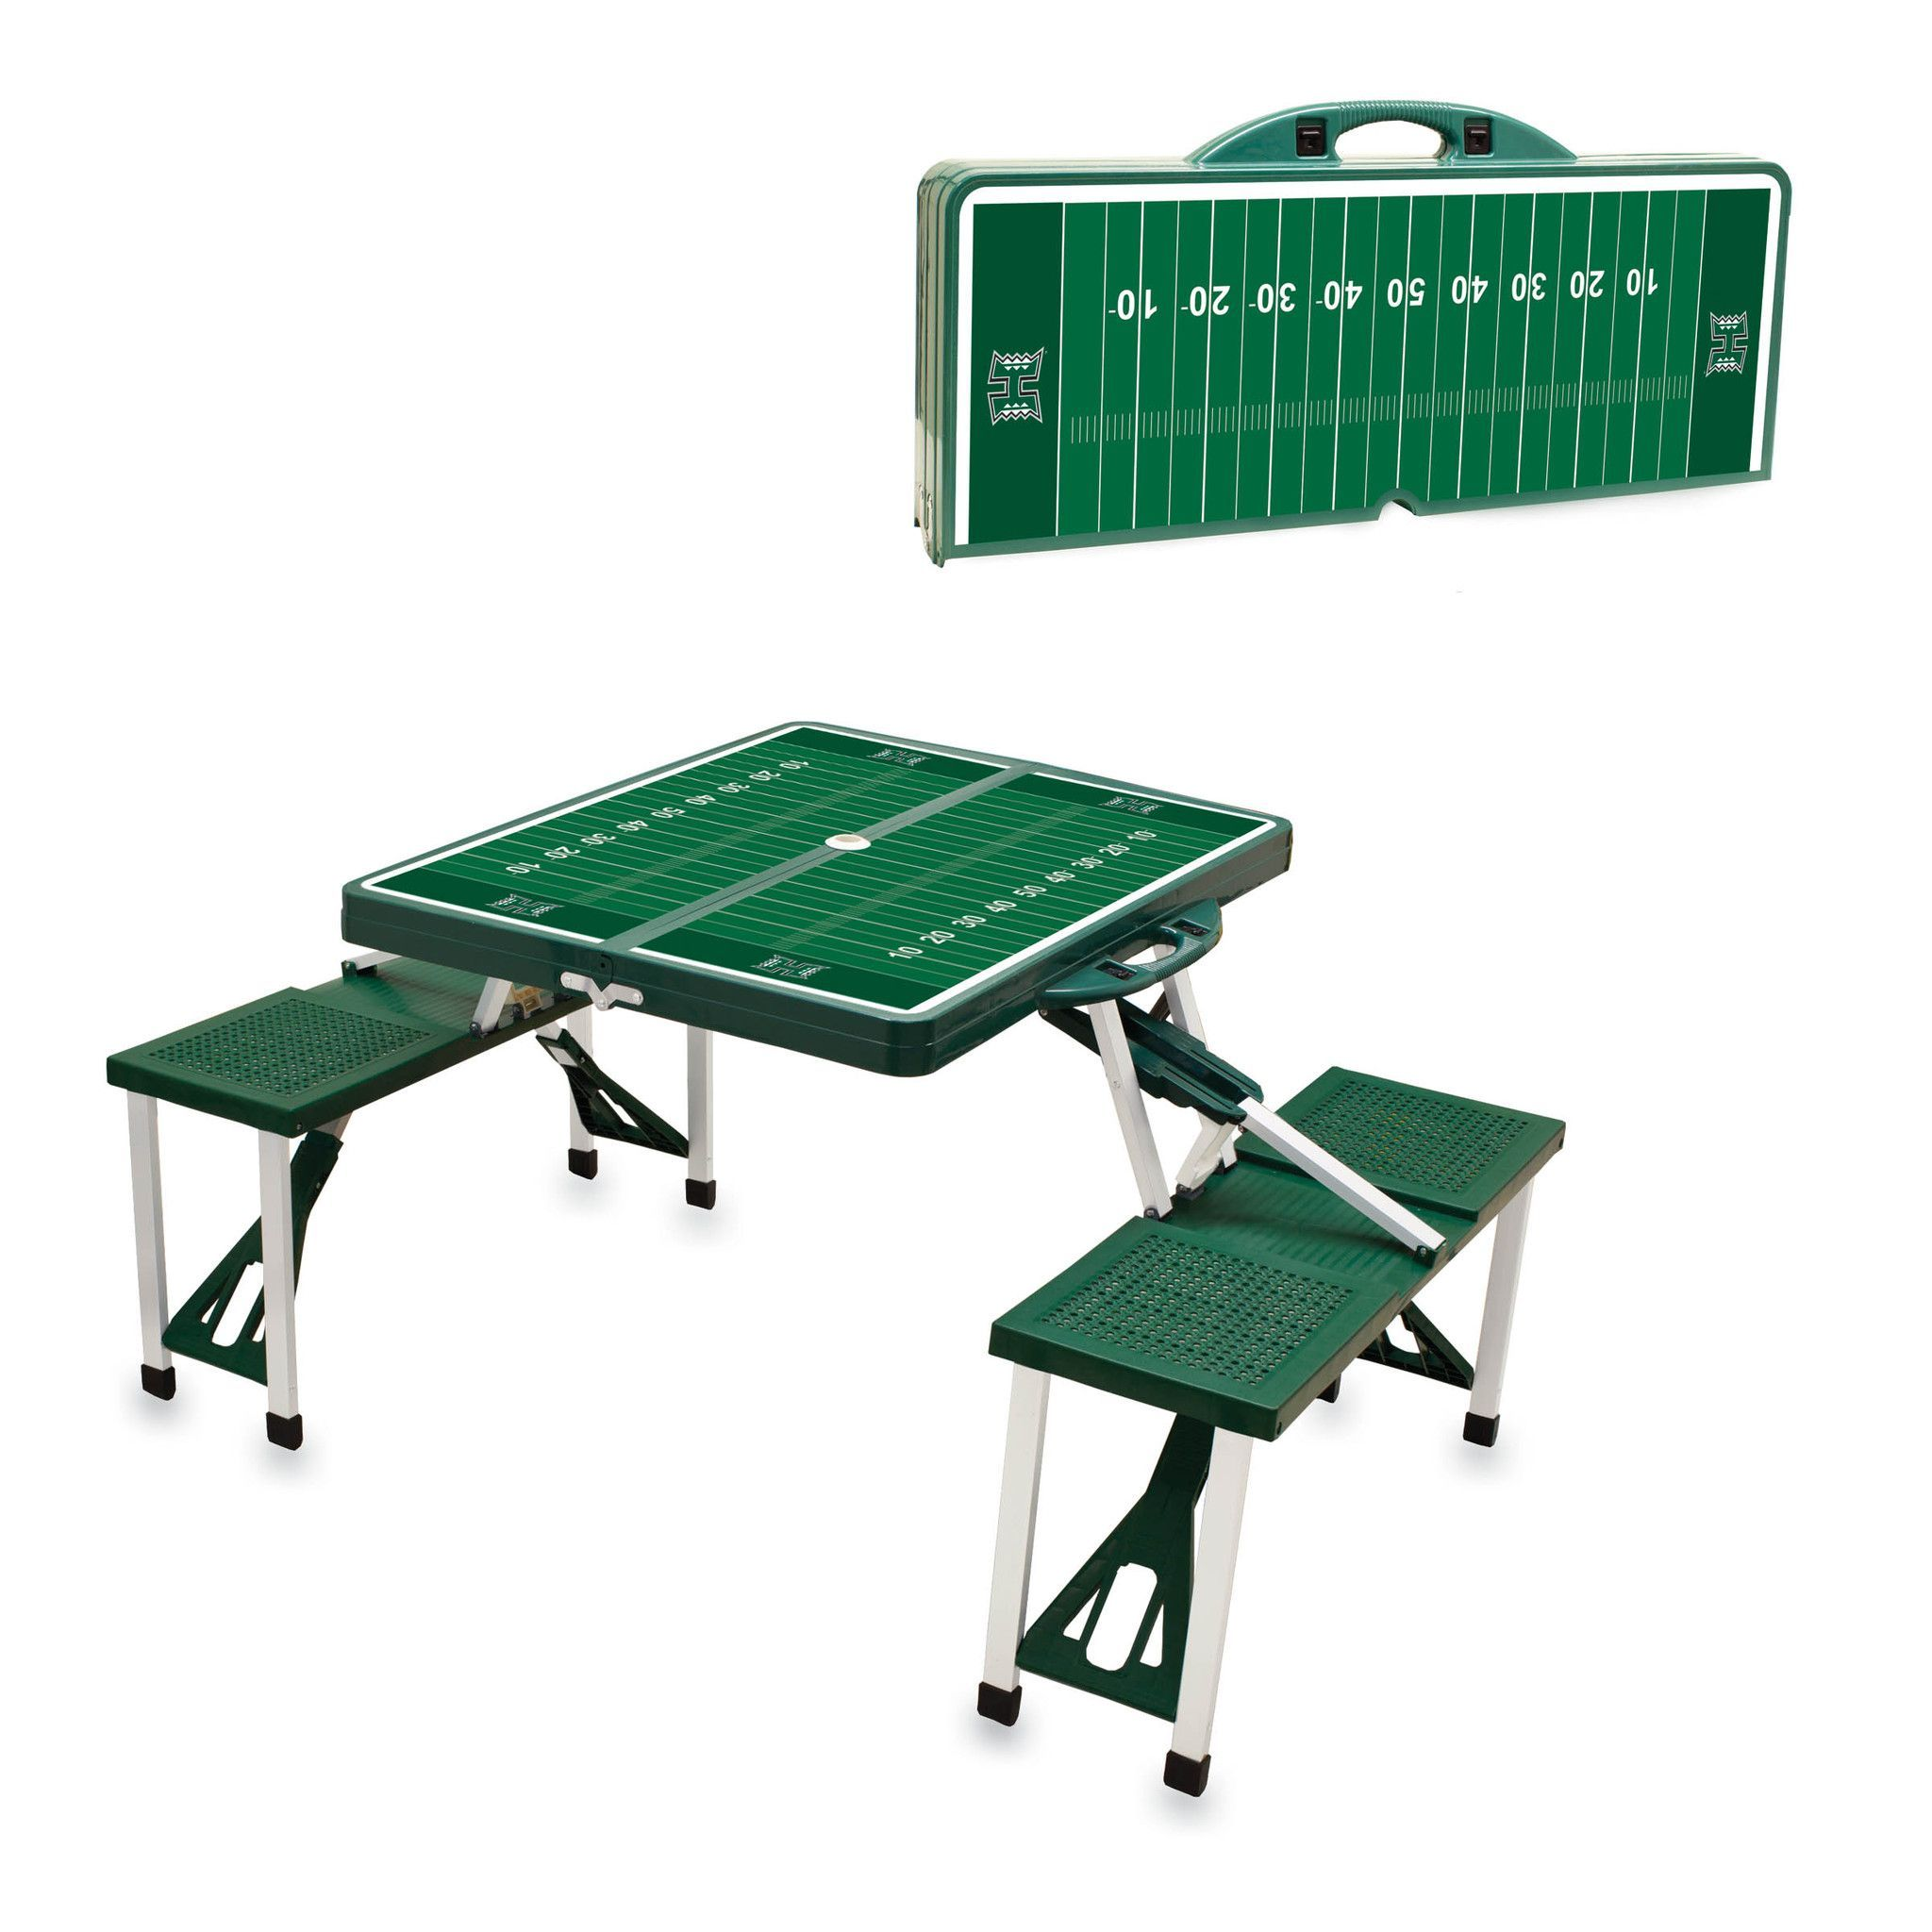 Picnic Table Sport - University of Hawaii Warriors